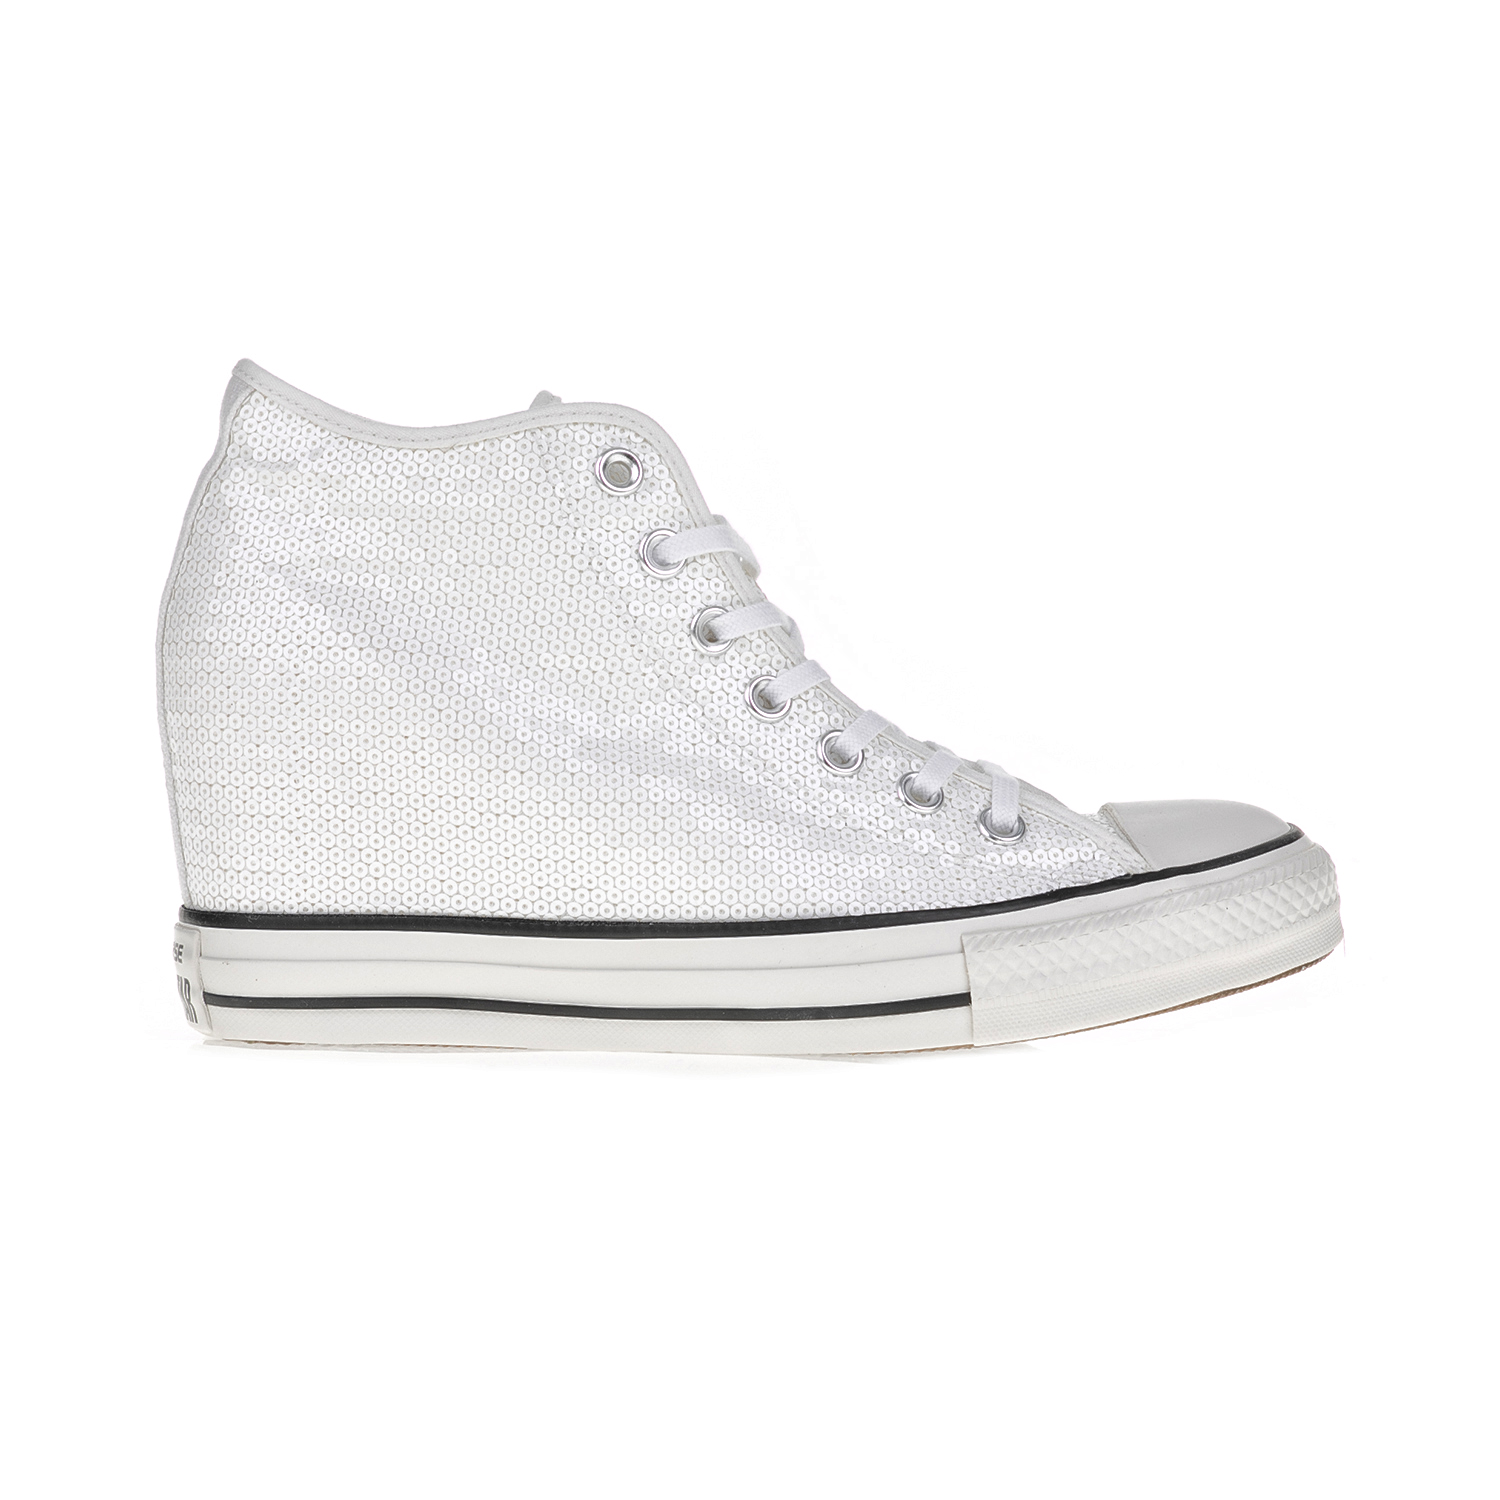 -45% Factory Outlet CONVERSE – Γυναικεία αθλητικά μποτάκια CONVERSE CT AS  Mid Lux λευκά 0801a0af4c2